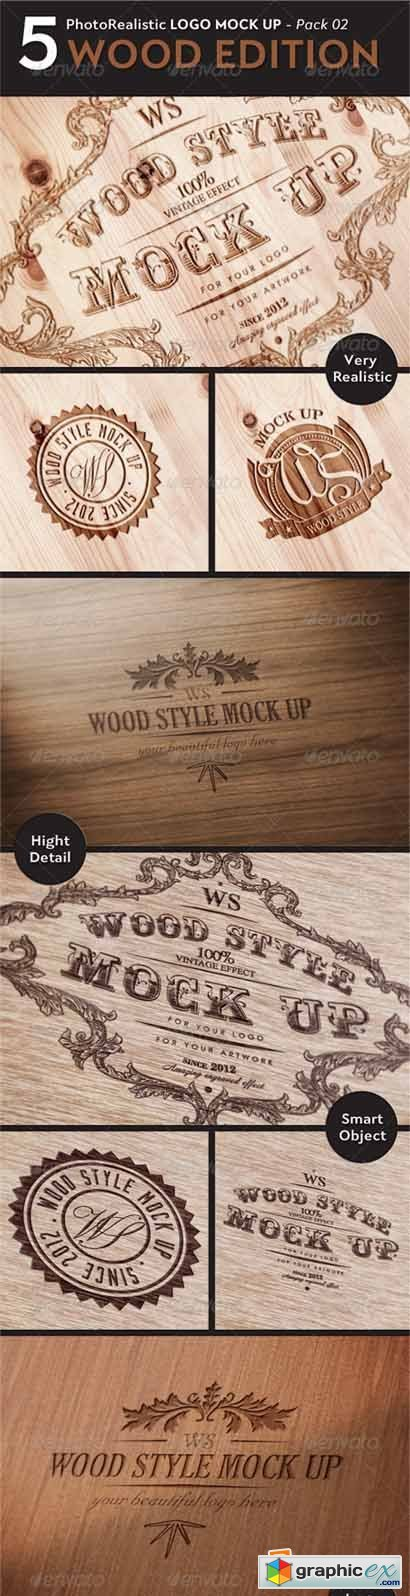 5 Realistic Logo Mock Up - WOOD Edition 2903477